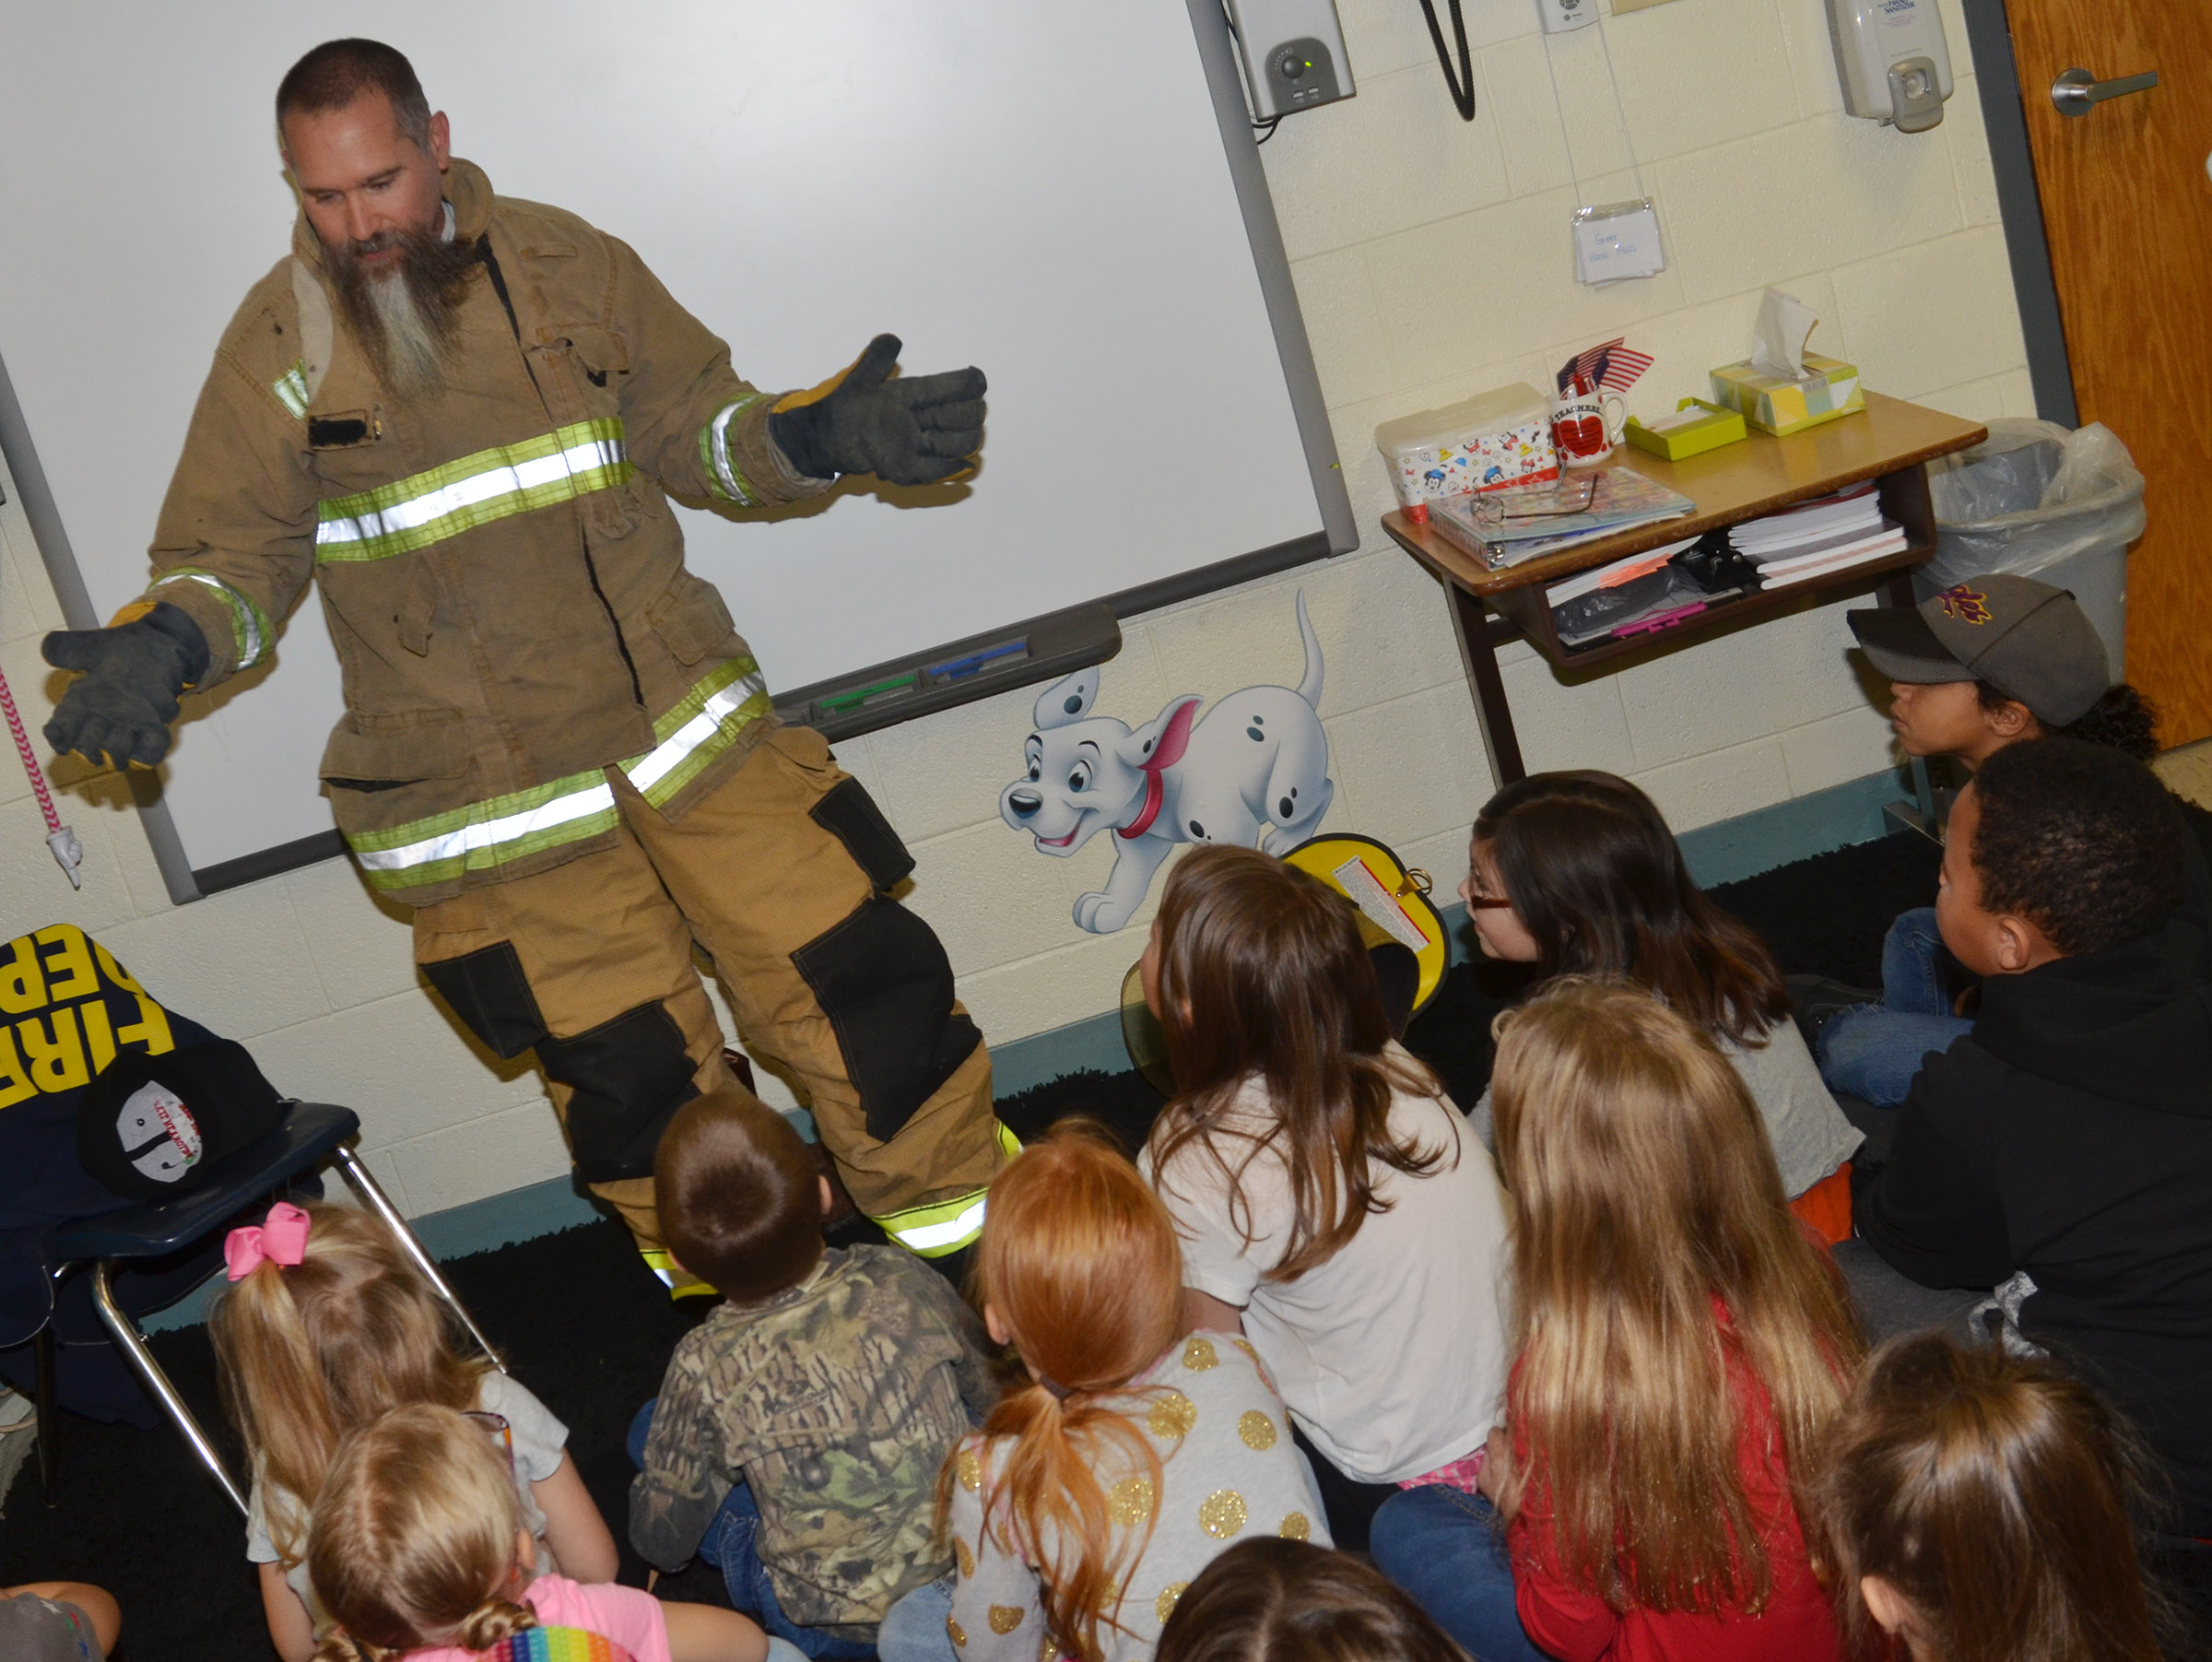 Randy Bricken, who is a volunteer firefighter at Taylor County Fire & Rescue and a custodial worker at Campbellsville elementary, middle and high schools, talks to CES first-graders about his job as a firefighter and the equipment he uses to keep him safe.